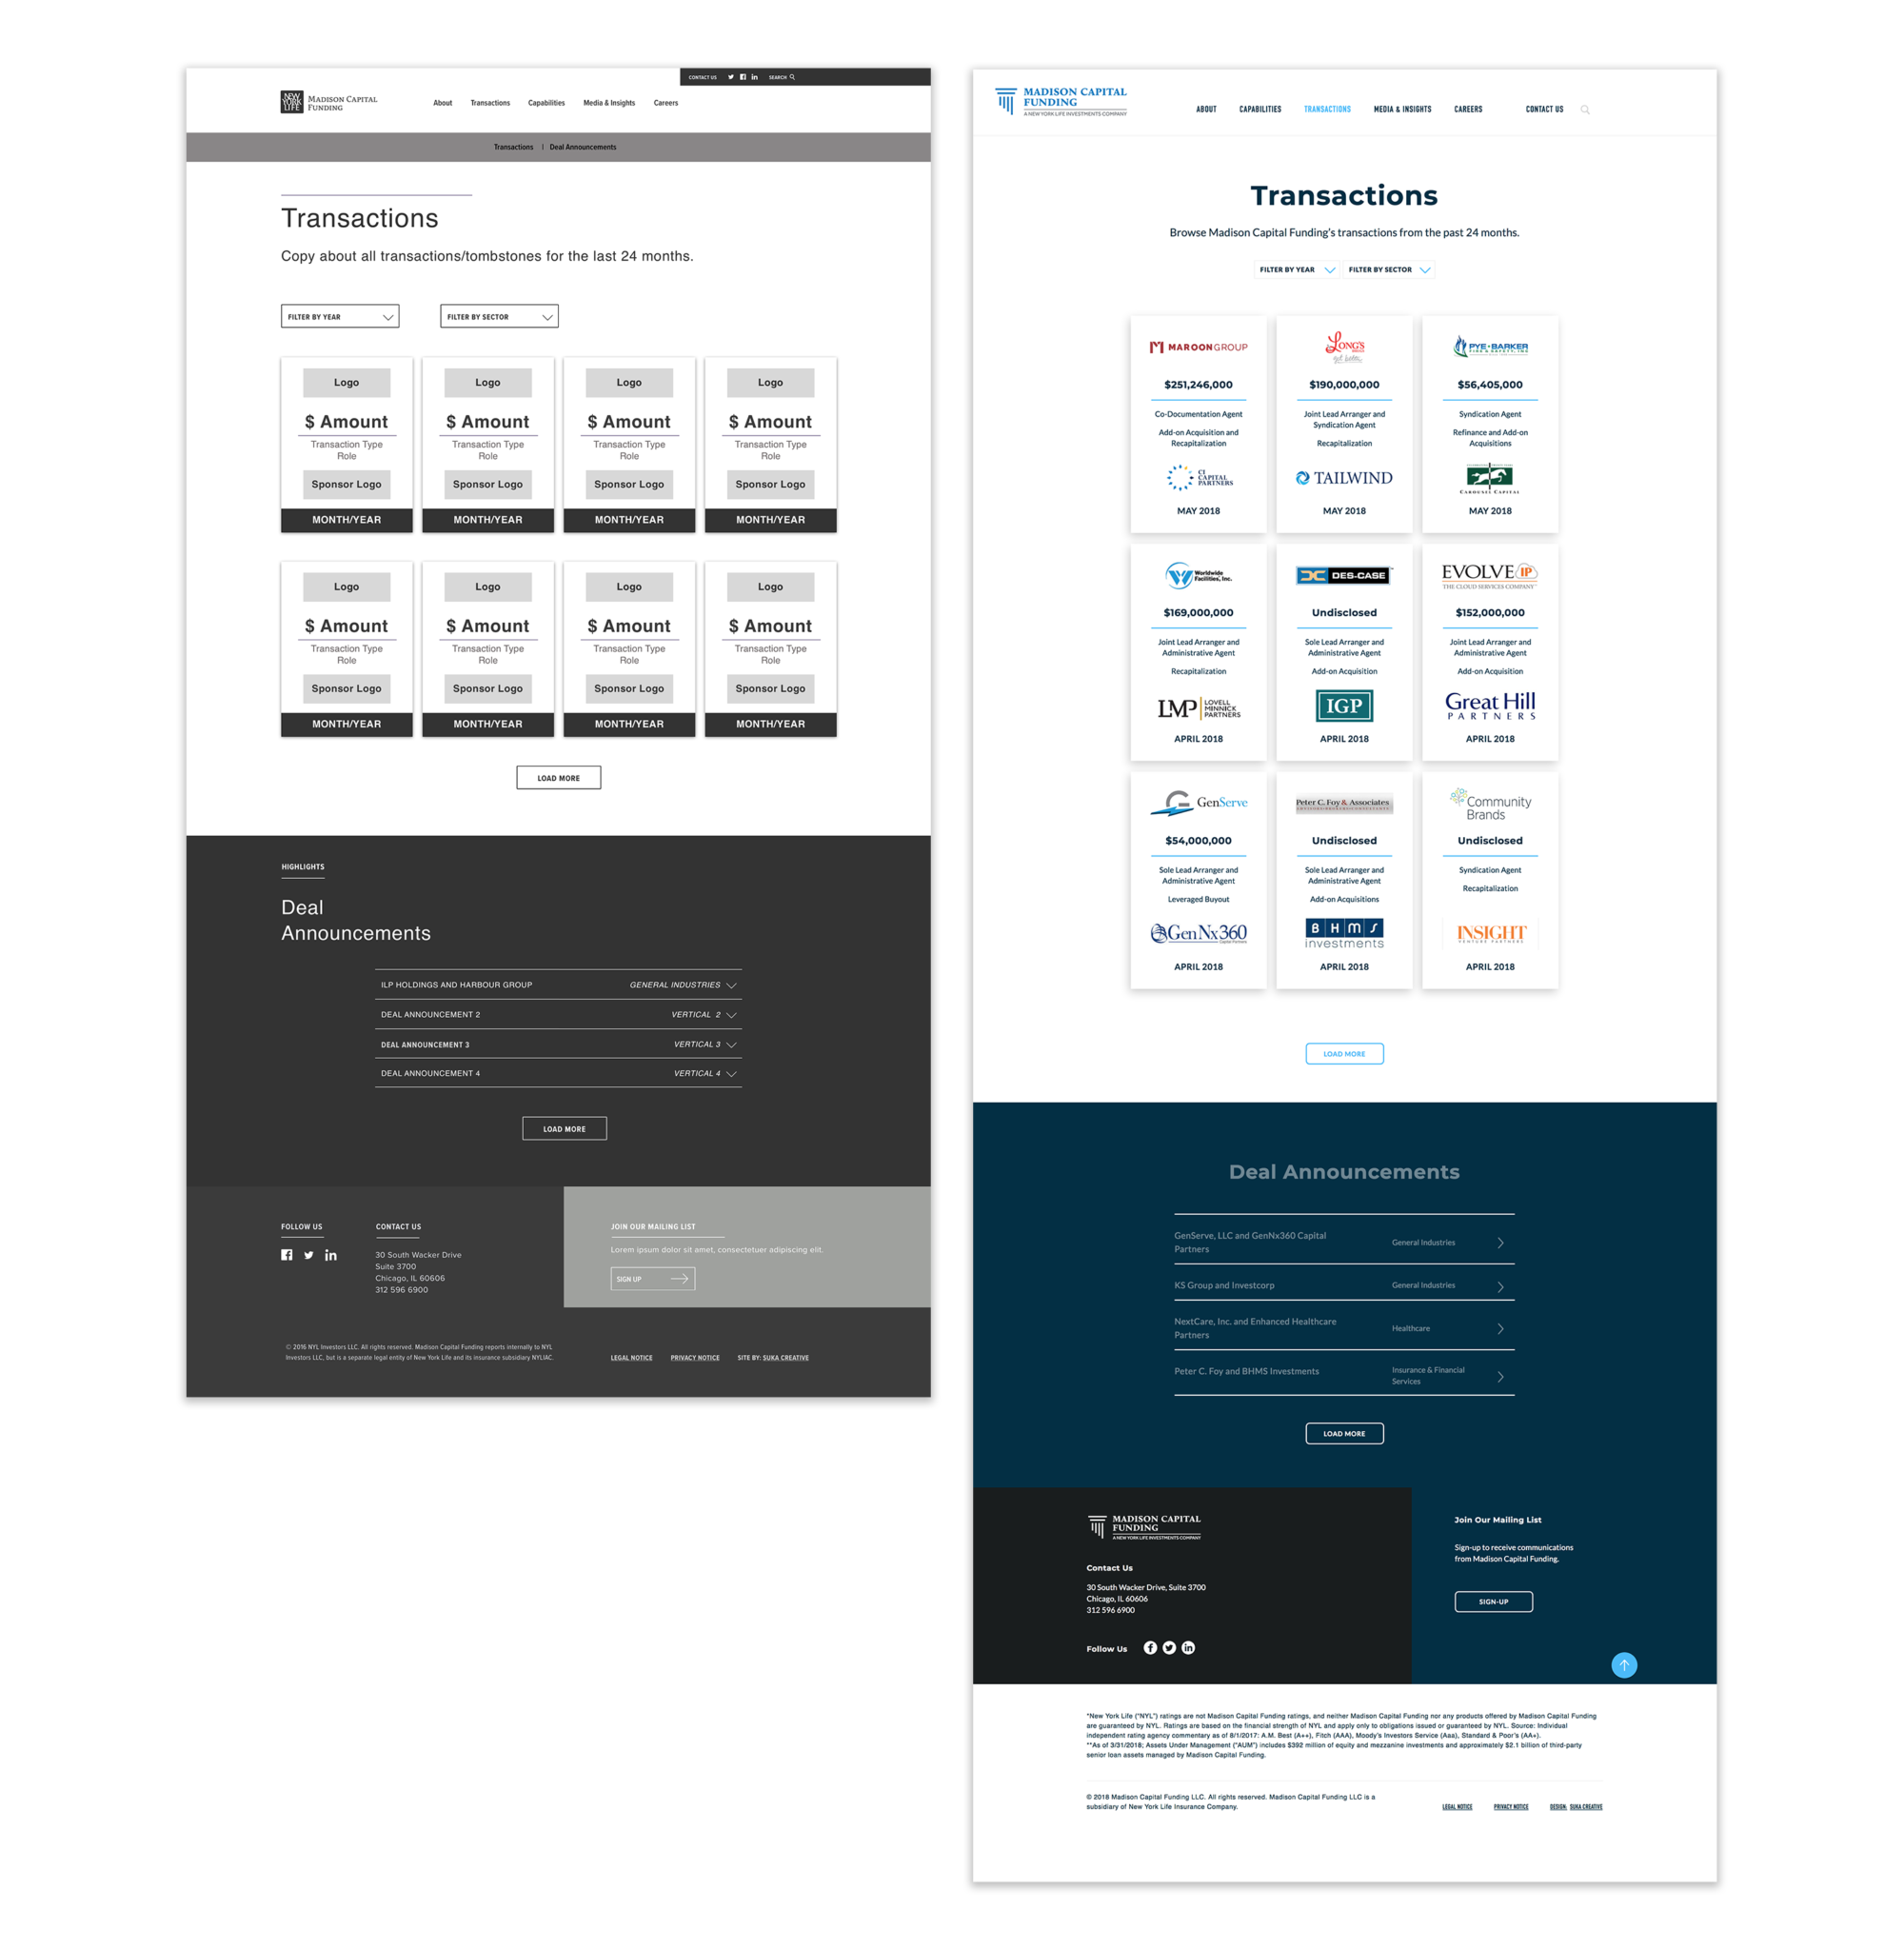 Wireframe and final page design to show translation of user-experience design to visual design for interactive Transactions page